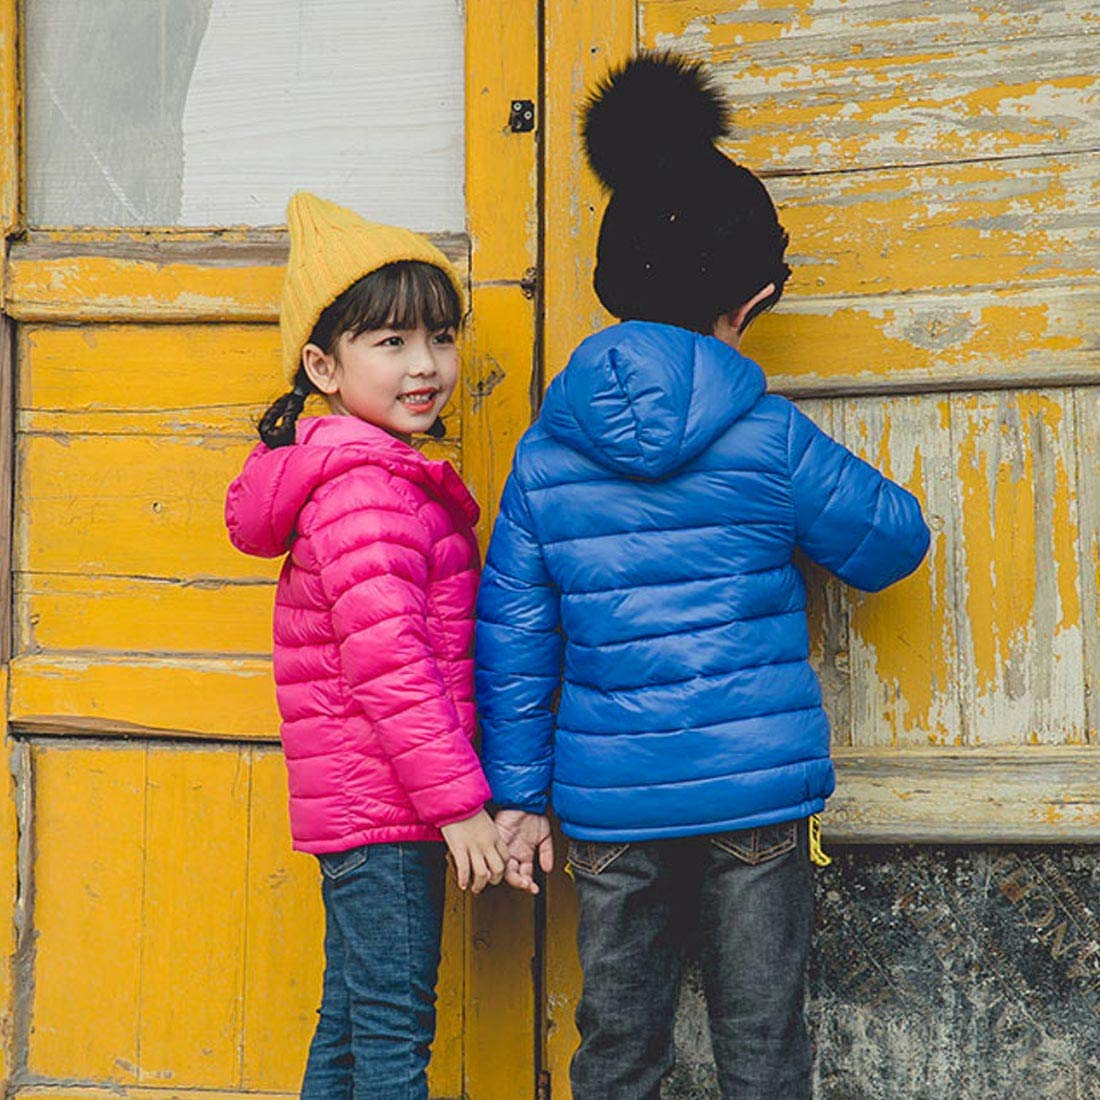 Girl Puffer Down Jacket Hooded Packable Lightweight Coat Winter Windproof Padded Outerwear Black 5-6T